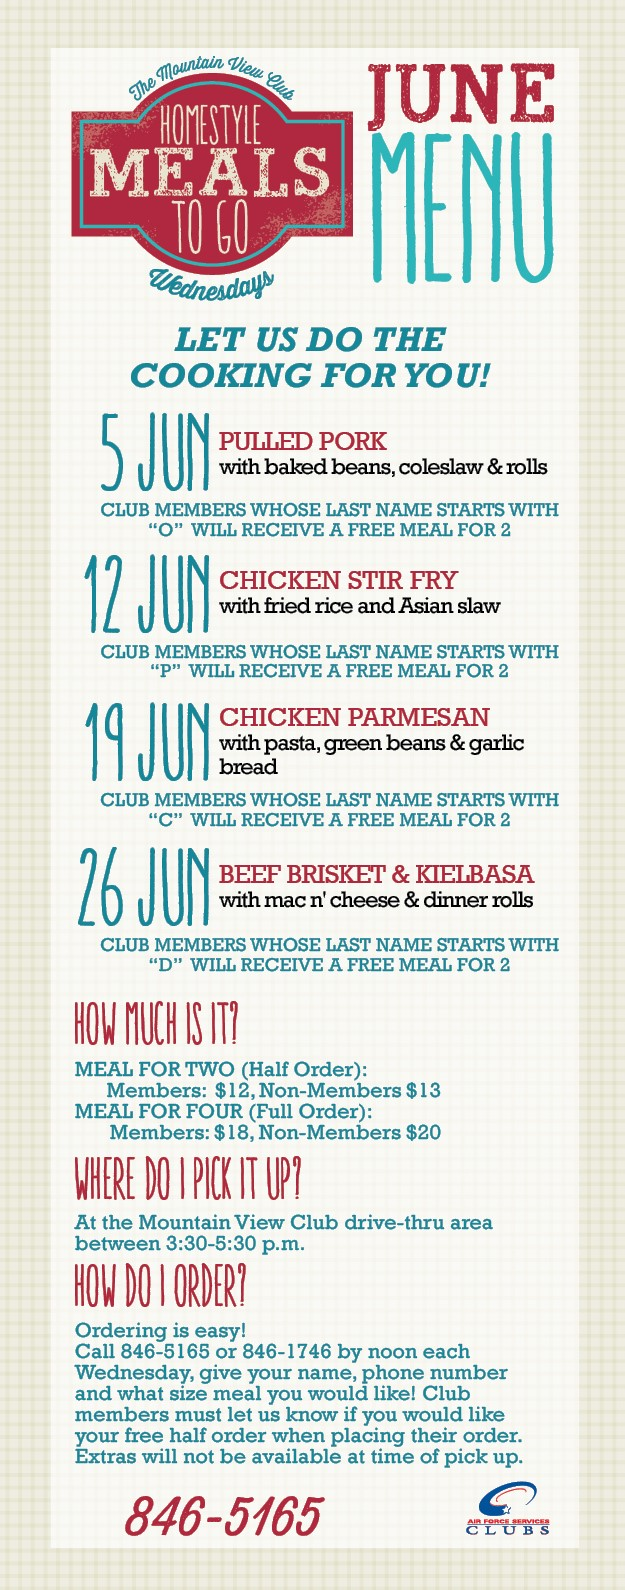 June Meals to Go at the Mountain View Club